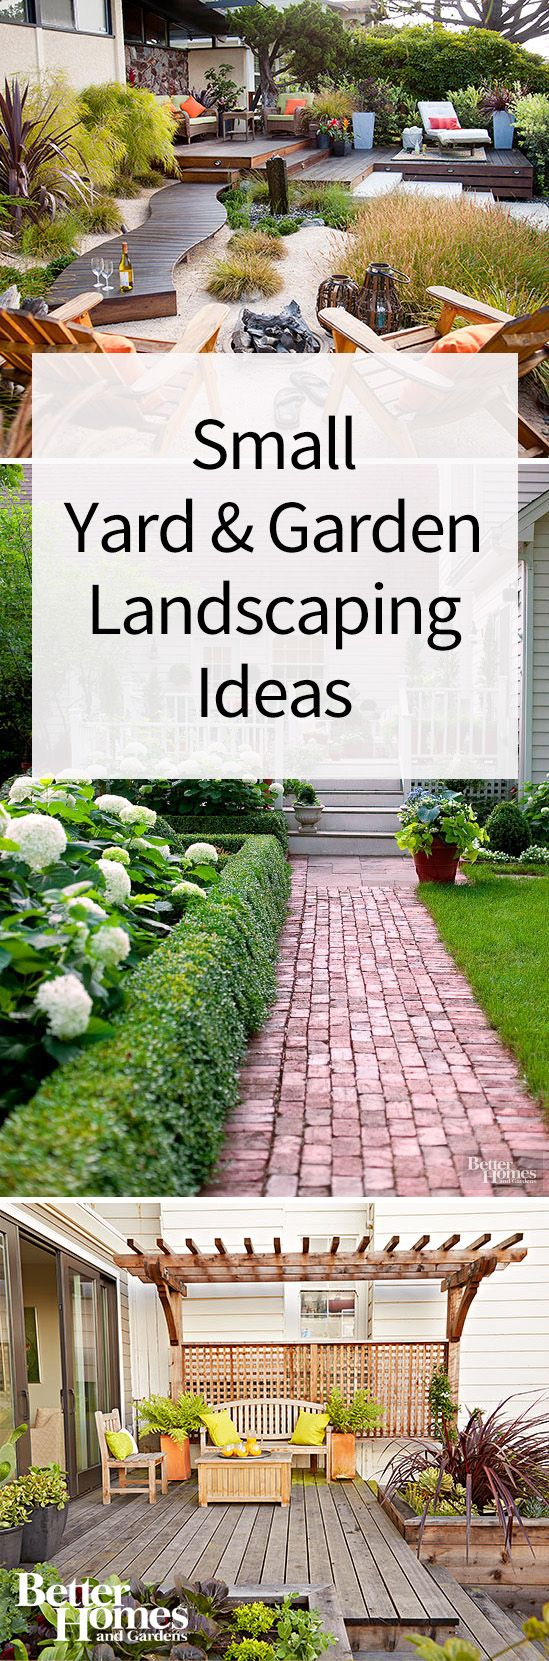 These ideas are perfect for those working with a small yard or a small garden. Just because you have a small backyard, that doesn't mean your outdoor space can't feature a beautiful design. Use these DIY landscaping ideas to create the garden oasis of your dreams.